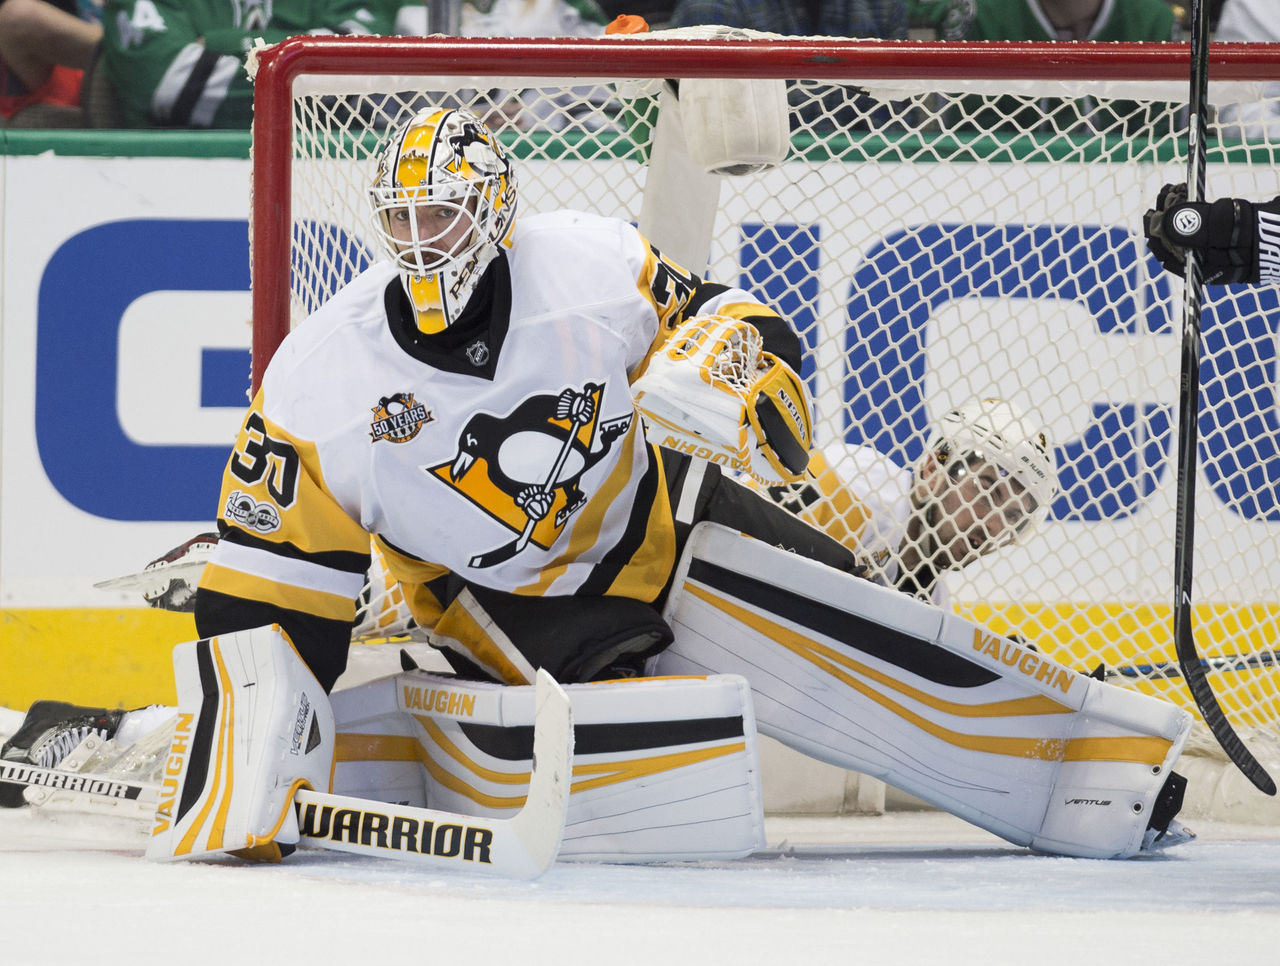 Cropped_2017-03-01t032833z_464716040_nocid_rtrmadp_3_nhl-pittsburgh-penguins-at-dallas-stars